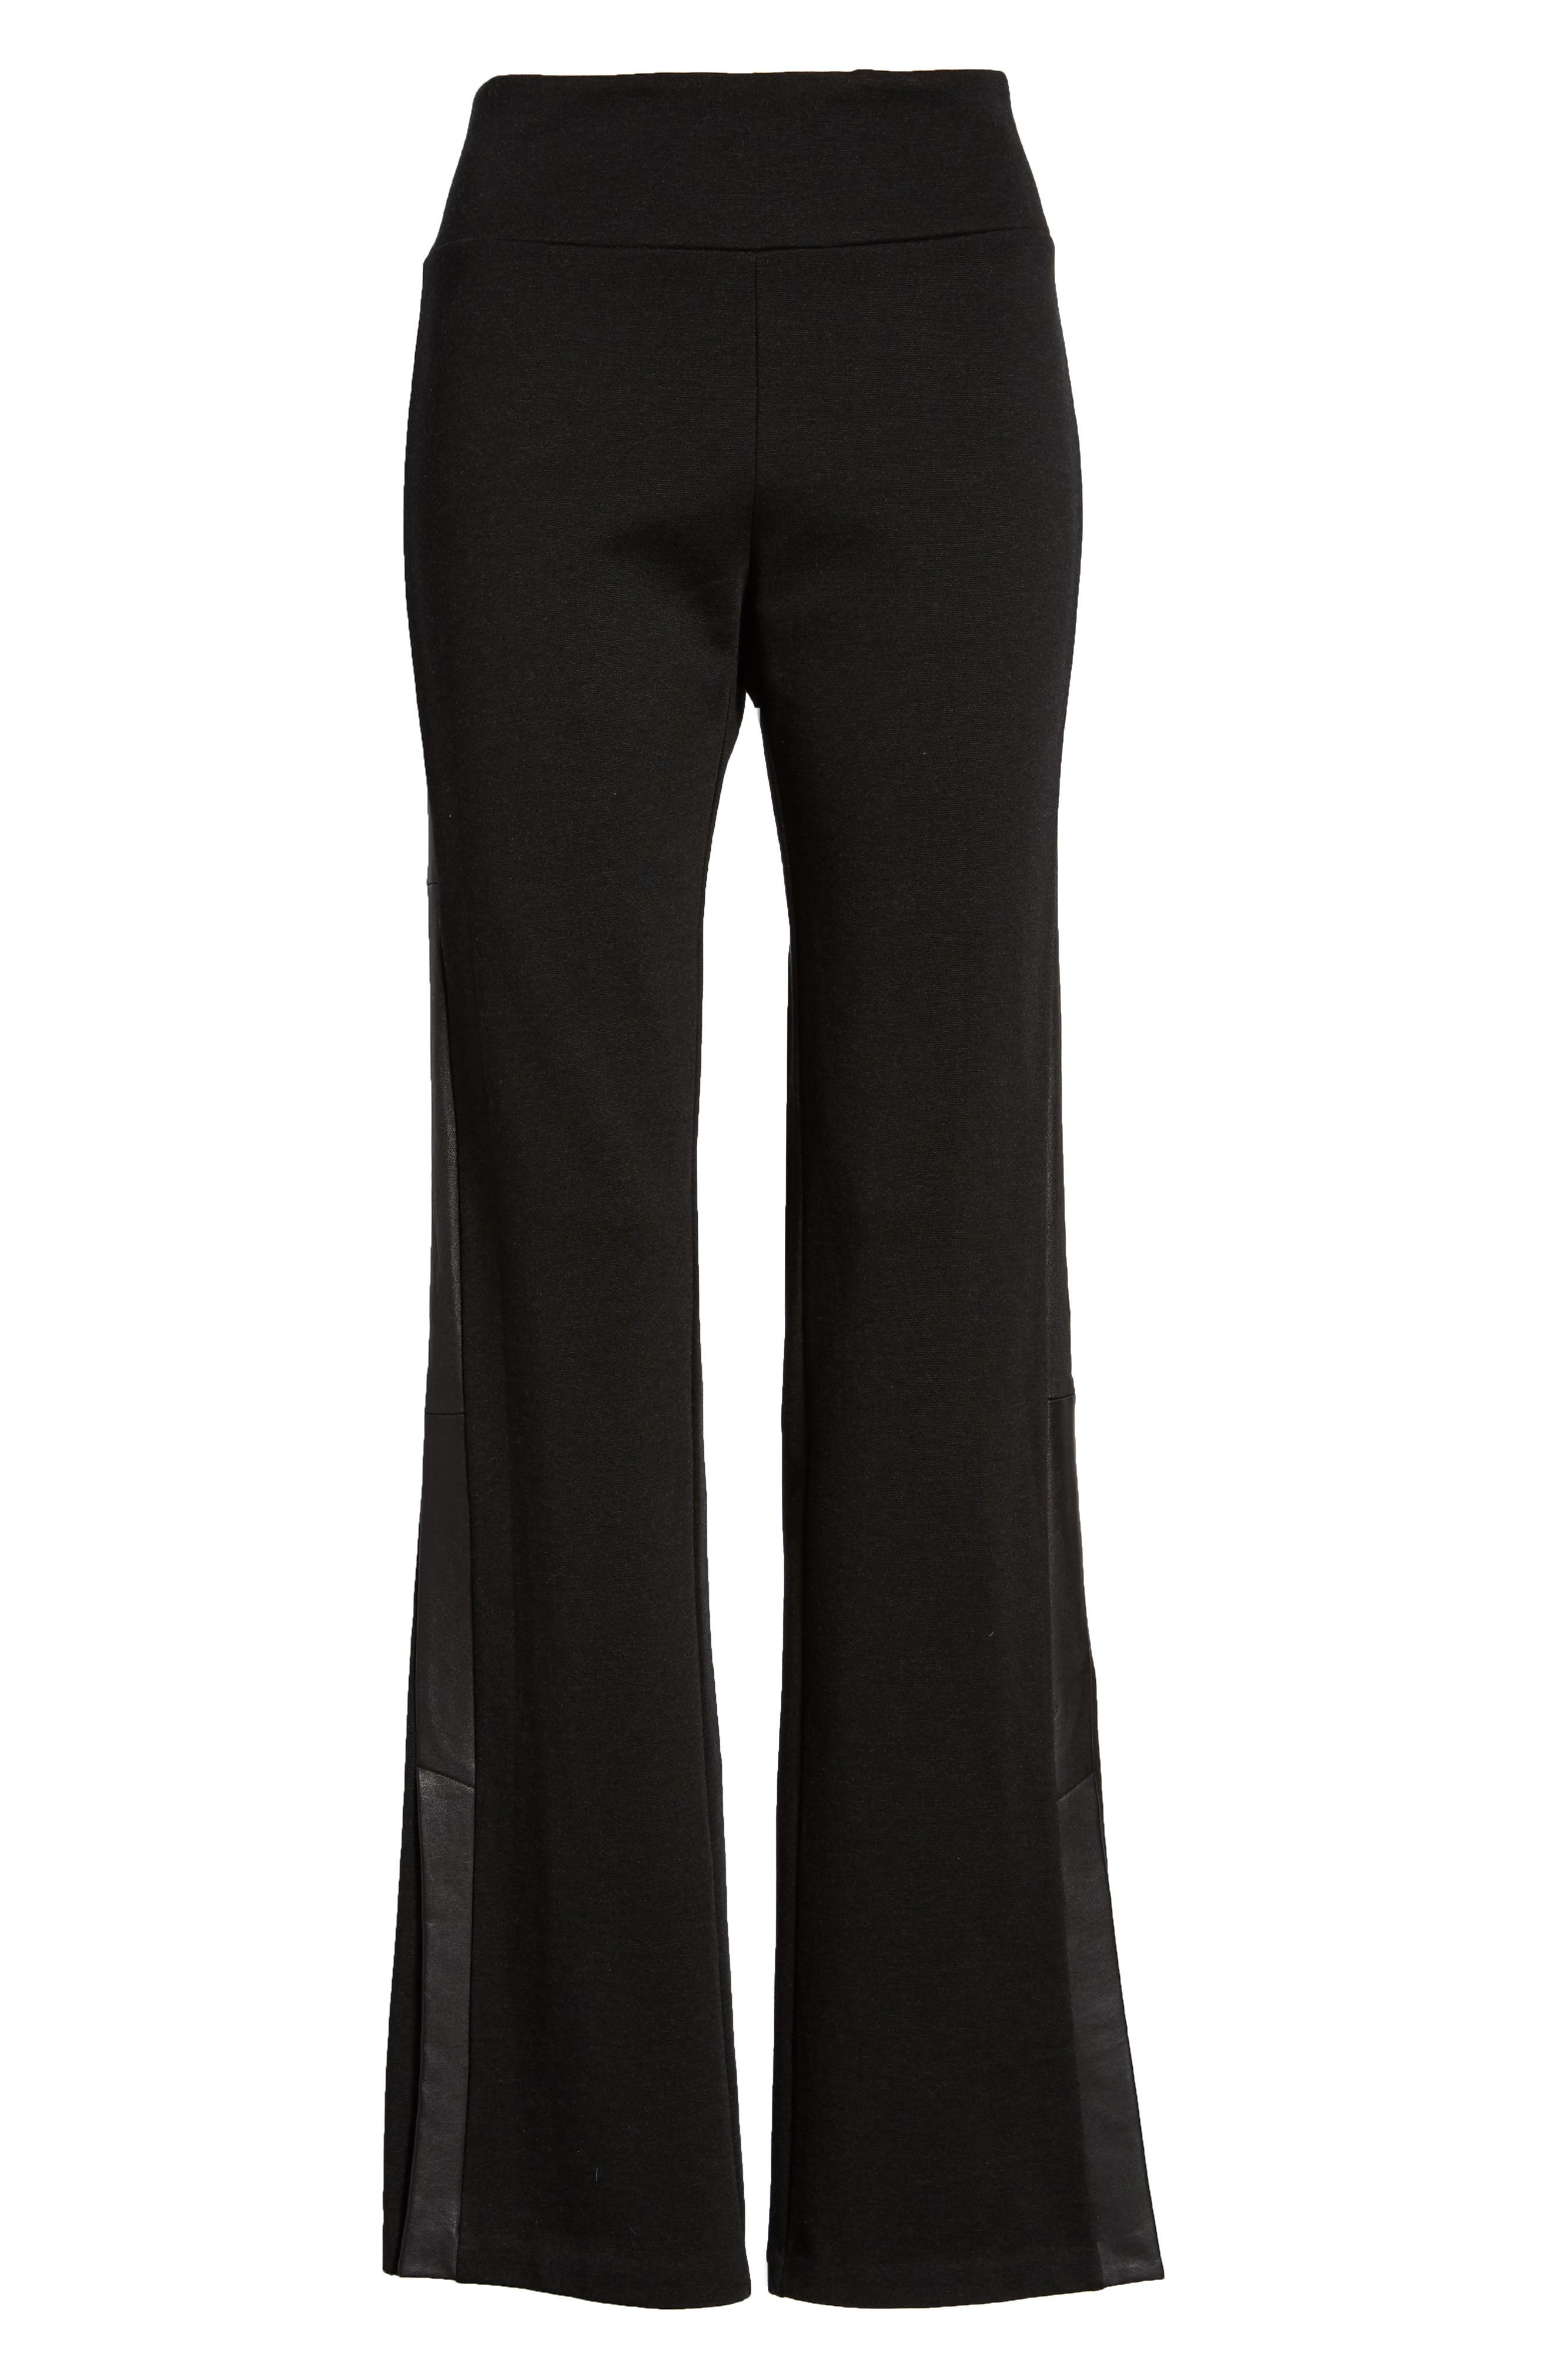 Slim Tuxedo Pants with Leather Stripe,                             Alternate thumbnail 6, color,                             001